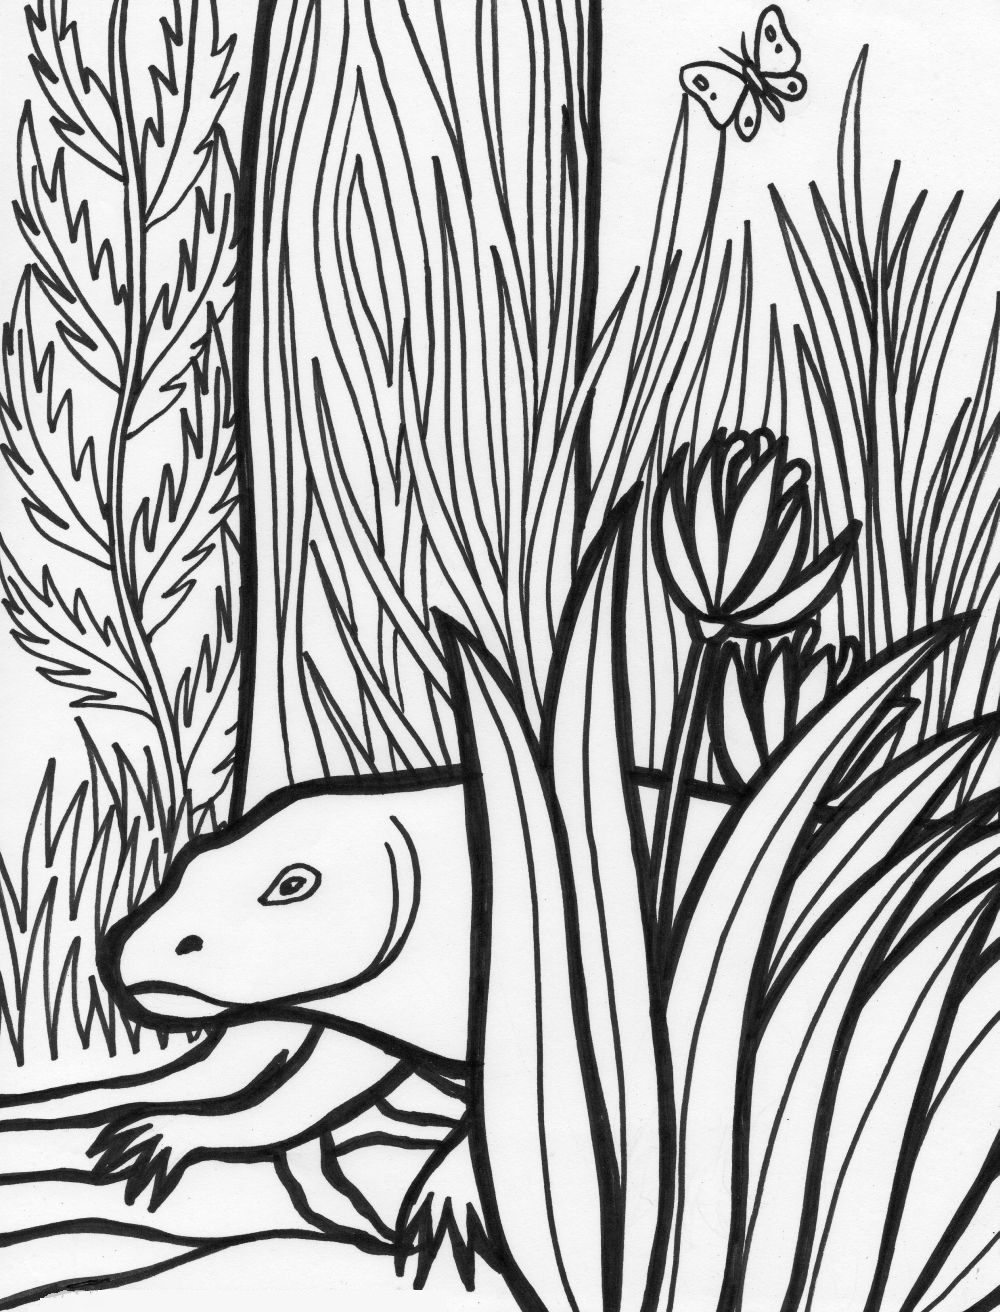 rainforest coloring pages - rainforest coloring pages endangered species coloring pages for free 5 2